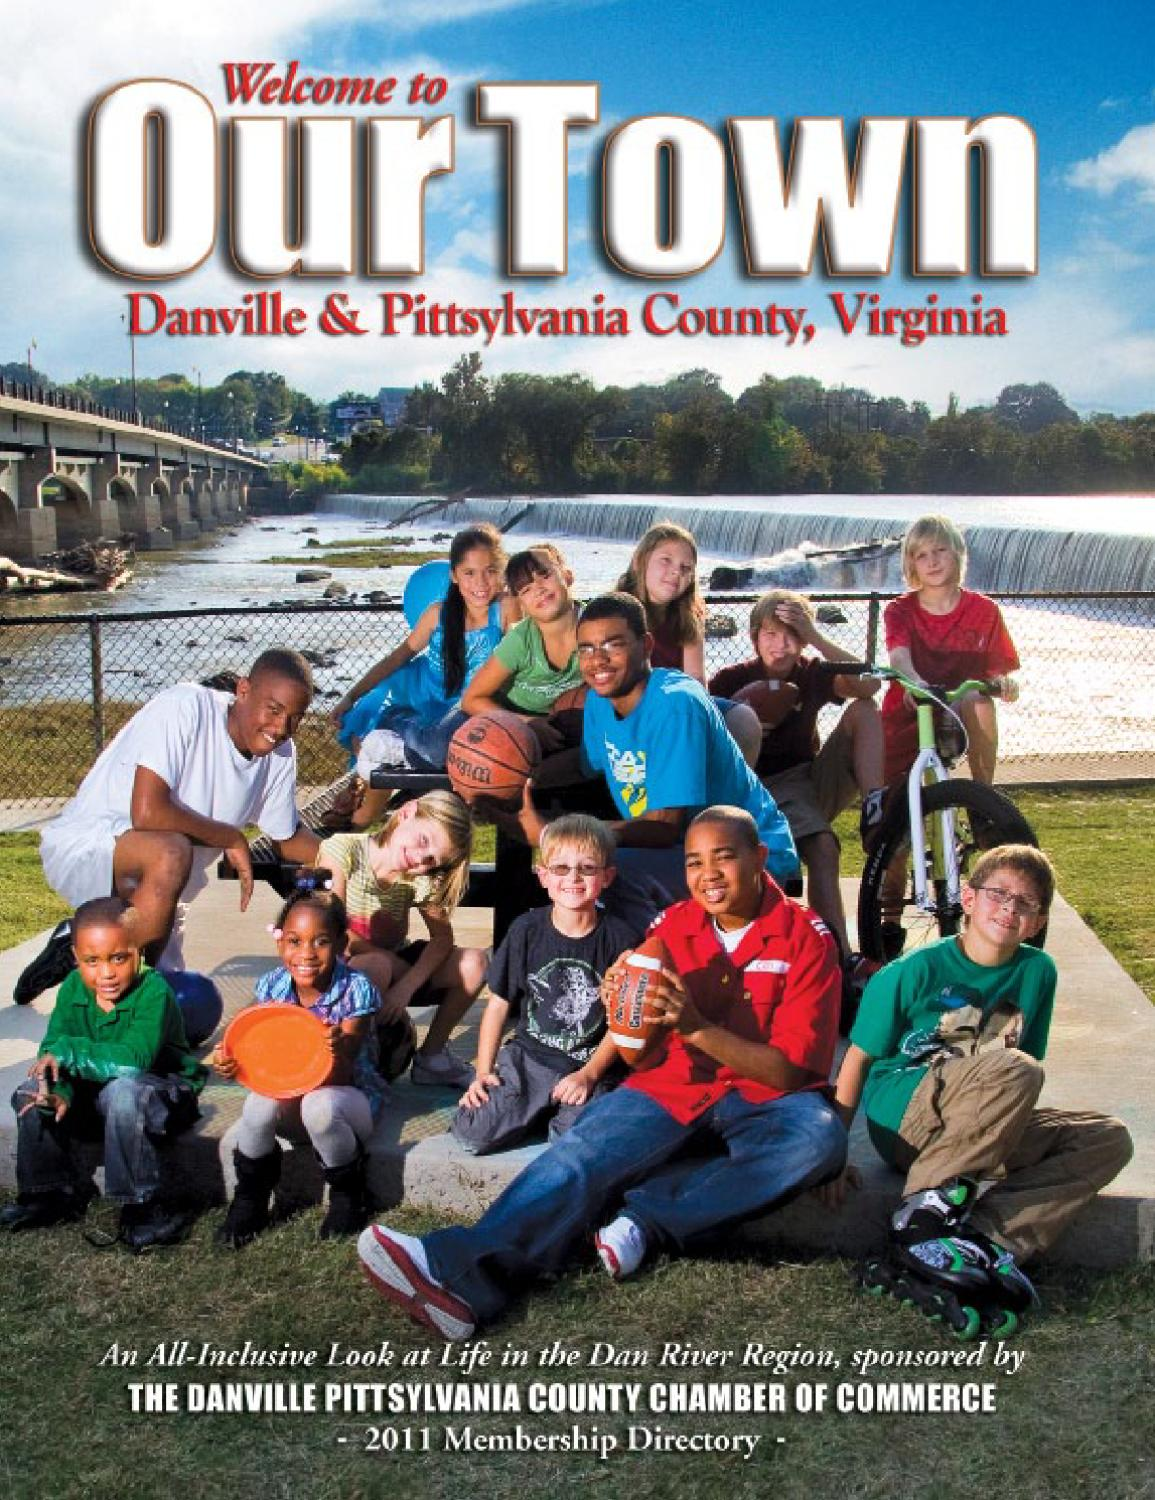 welcome to our town danville virginia by andrew brooks welcome to our town danville virginia 2011 by andrew brooks media group issuu